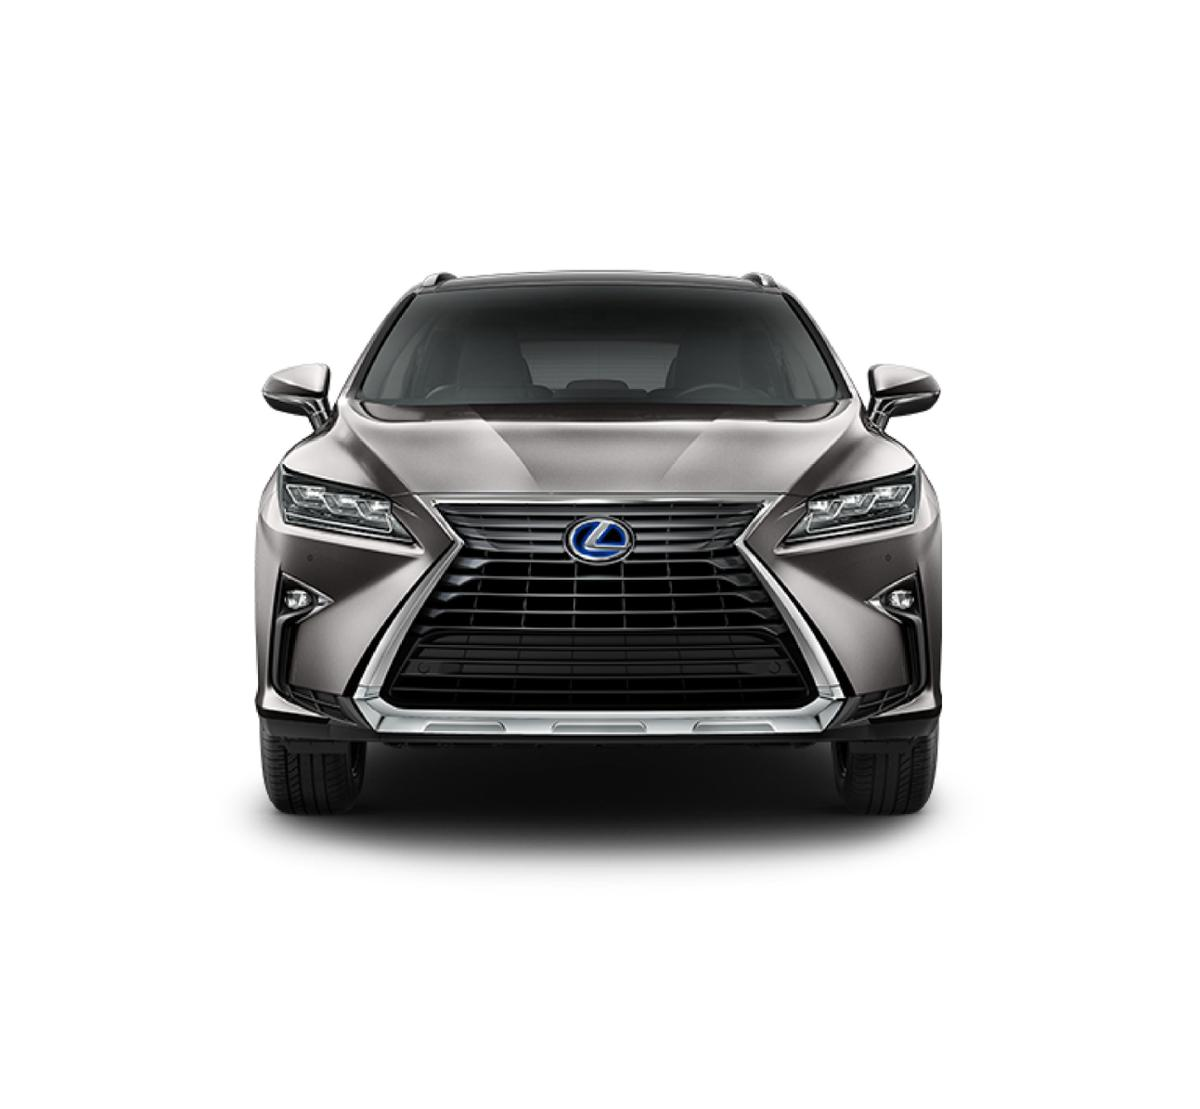 New 2019 Lexus RX 450hL For Sale In Scottsdale Tempe